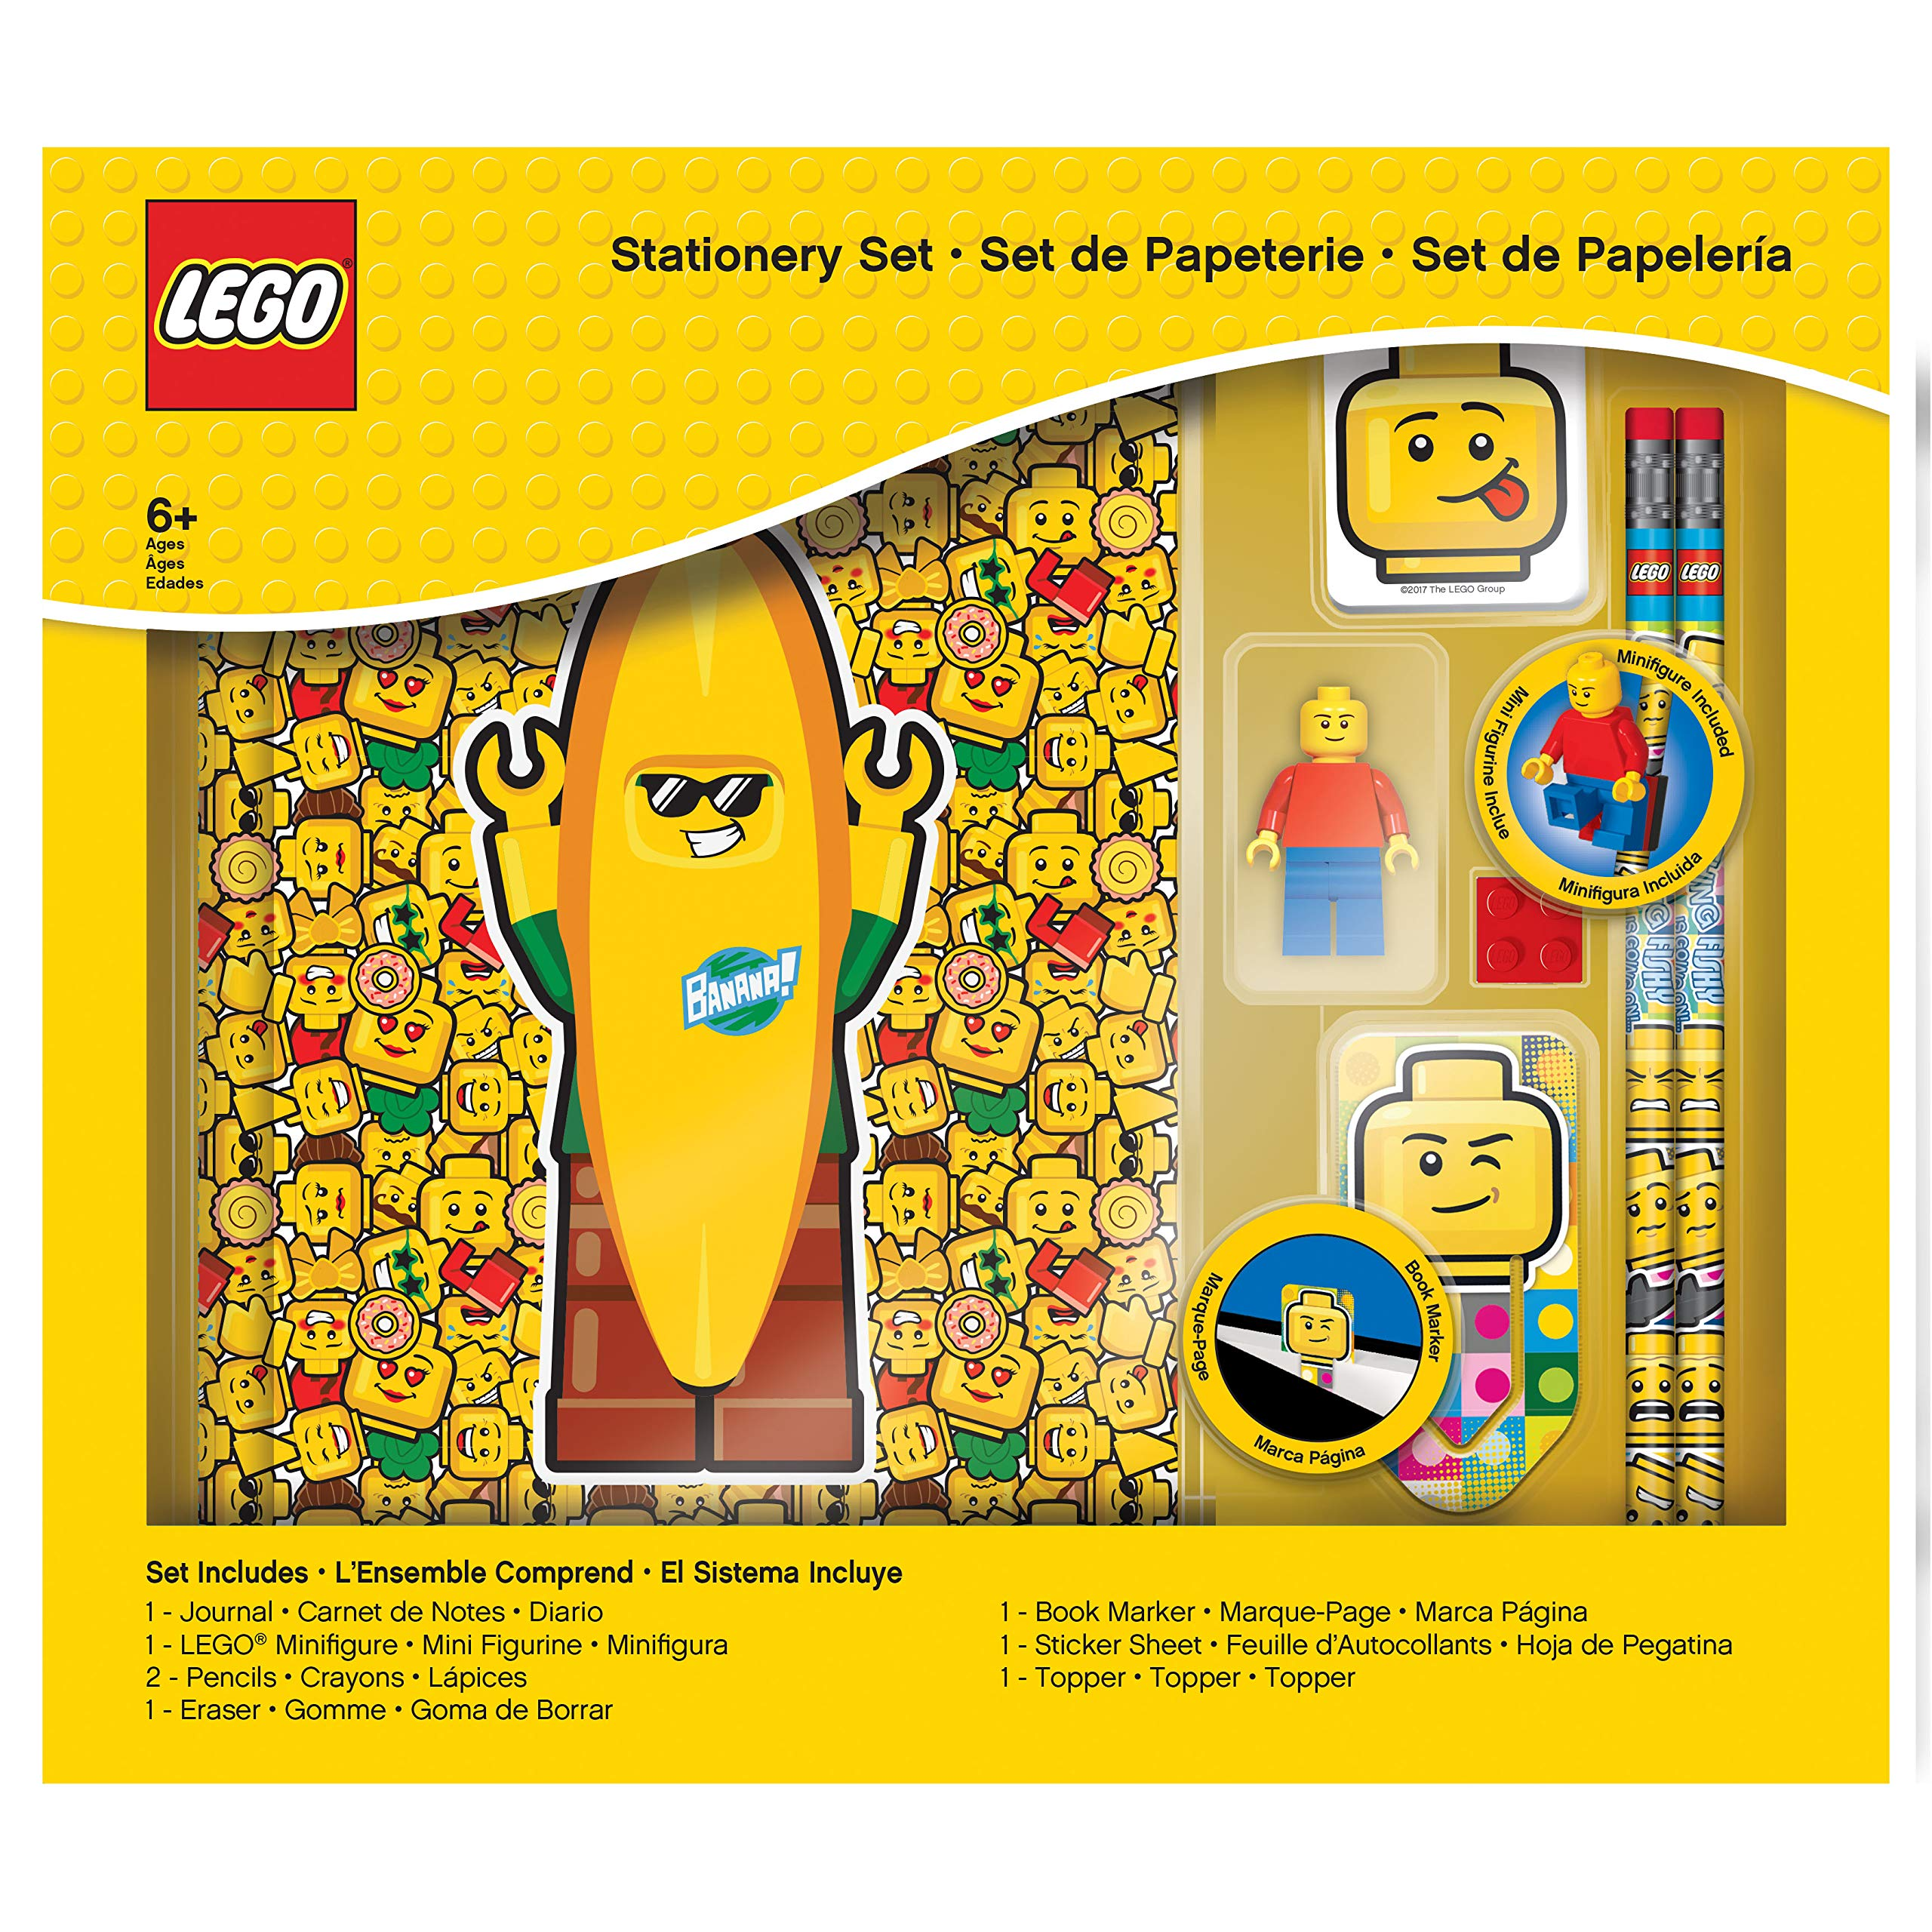 LEGO Classic 8 Piece Journal Stationery Set - Journal, Pencils, Erasers, Minifigure and More